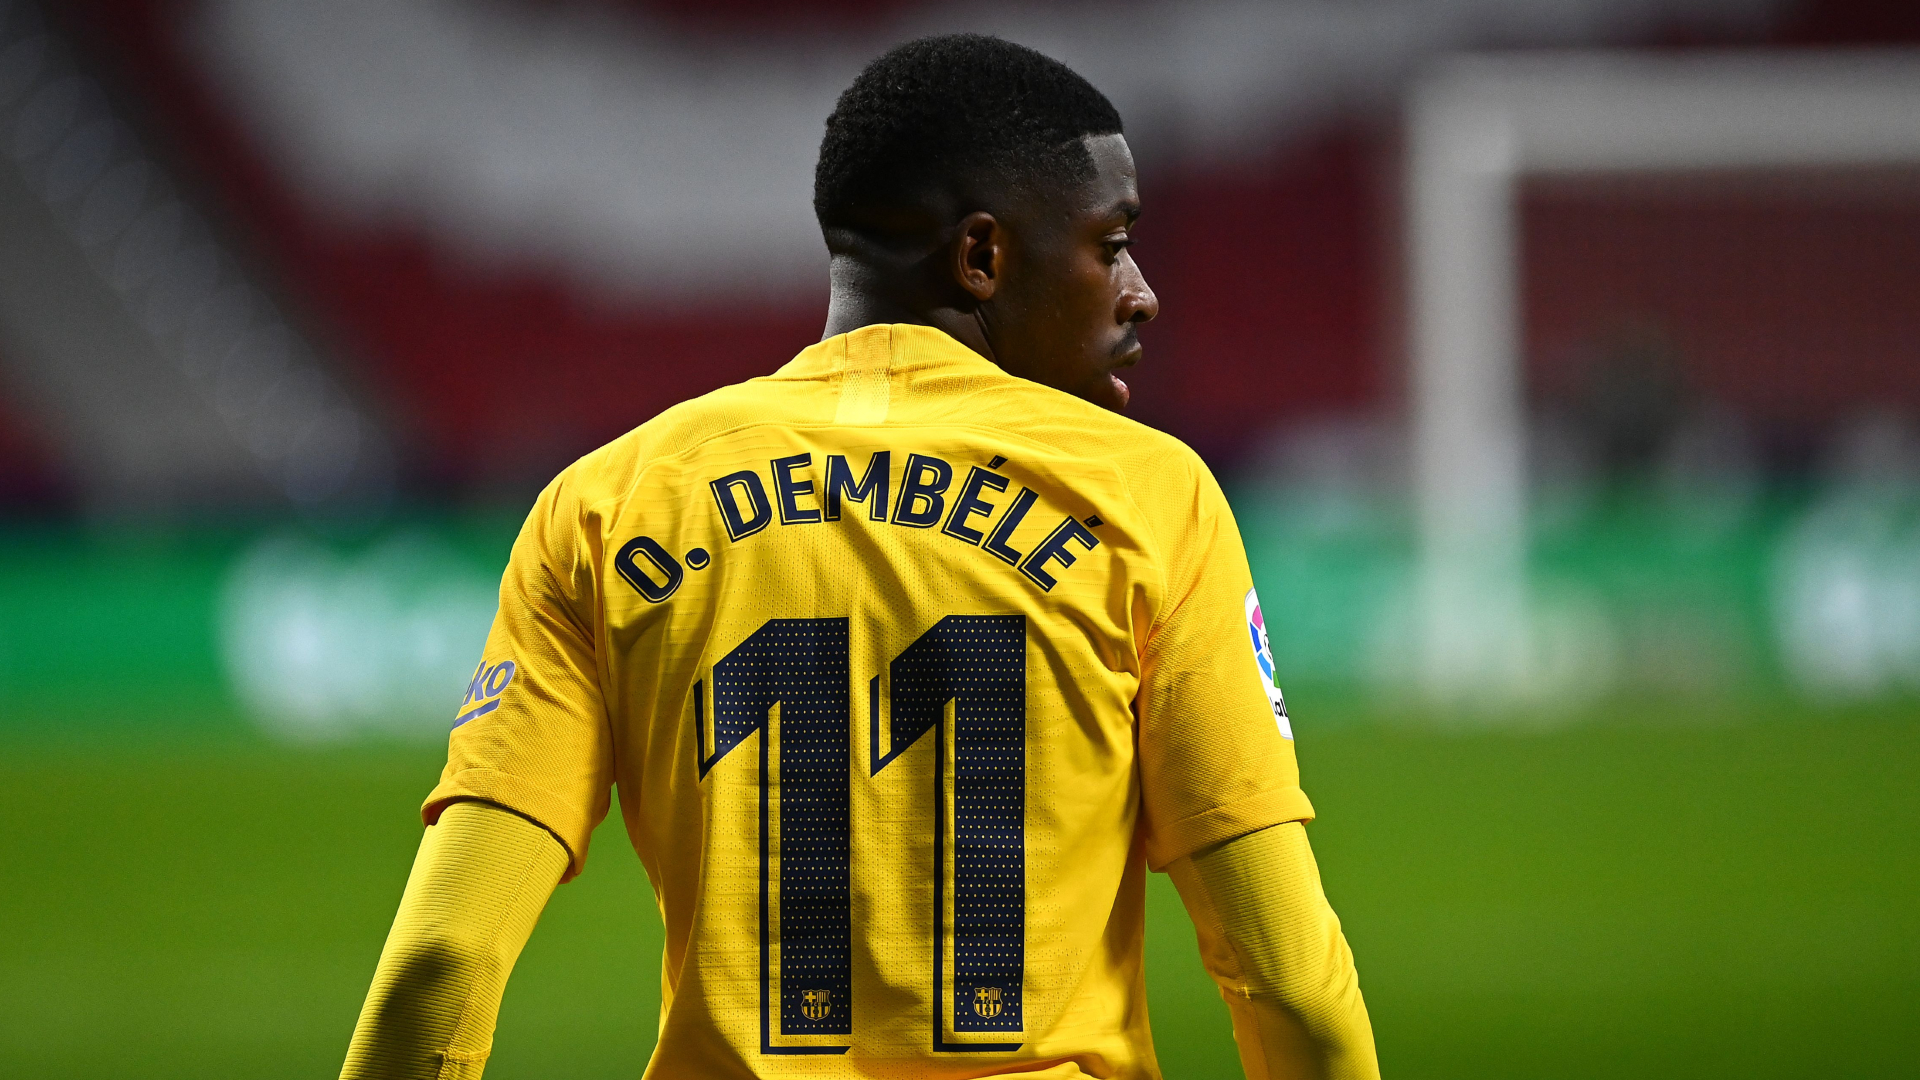 Dembele doubtful for Barcelona Champions League clash with Juventus after suffering hamstring injury